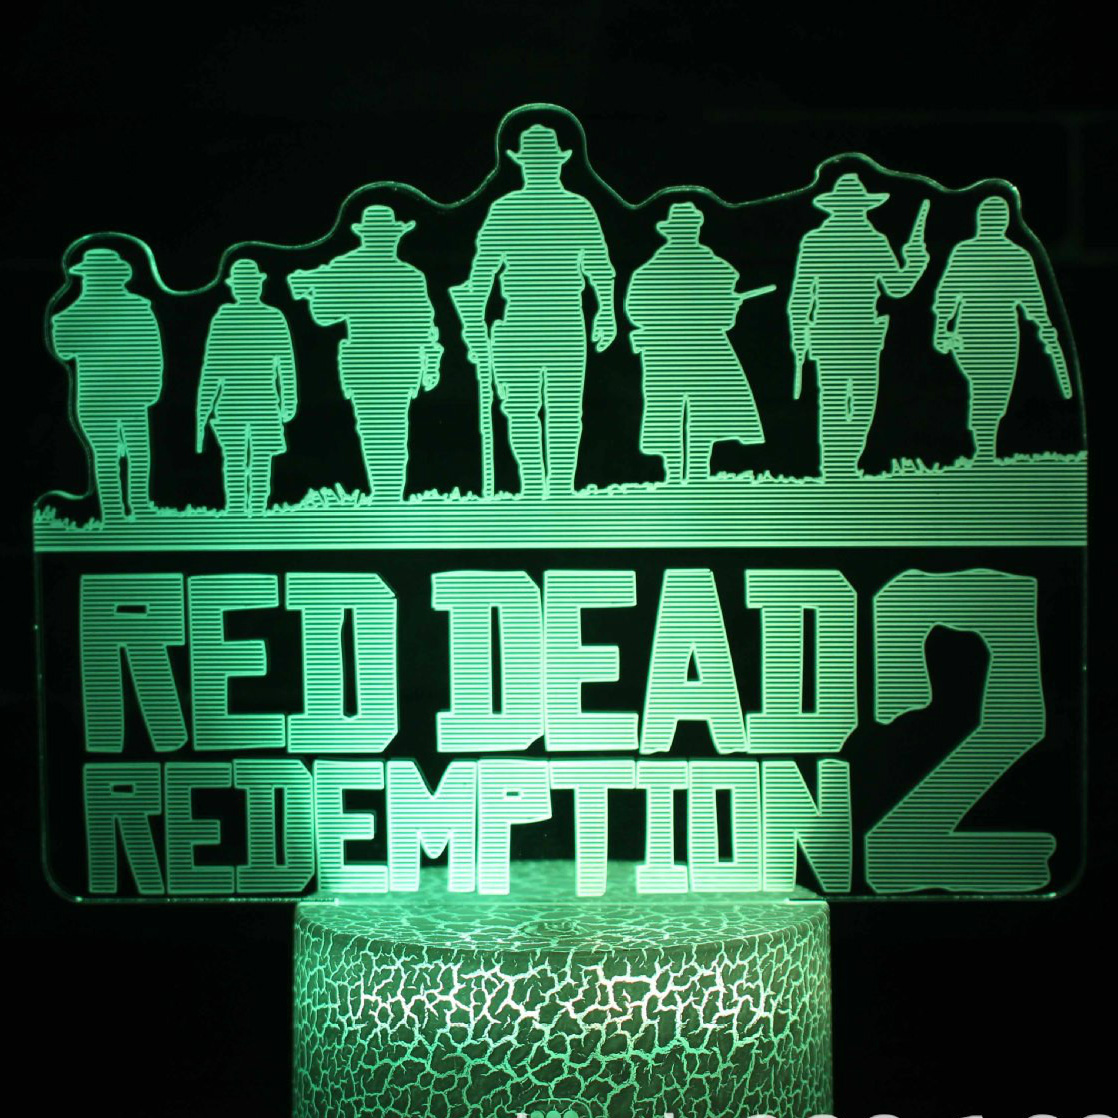 Game Red Dead Redemption 2 Novelty Lighting Gift Home Decoration Accessories Dutch Van Der Linde Led Night Light Bedroom Decor